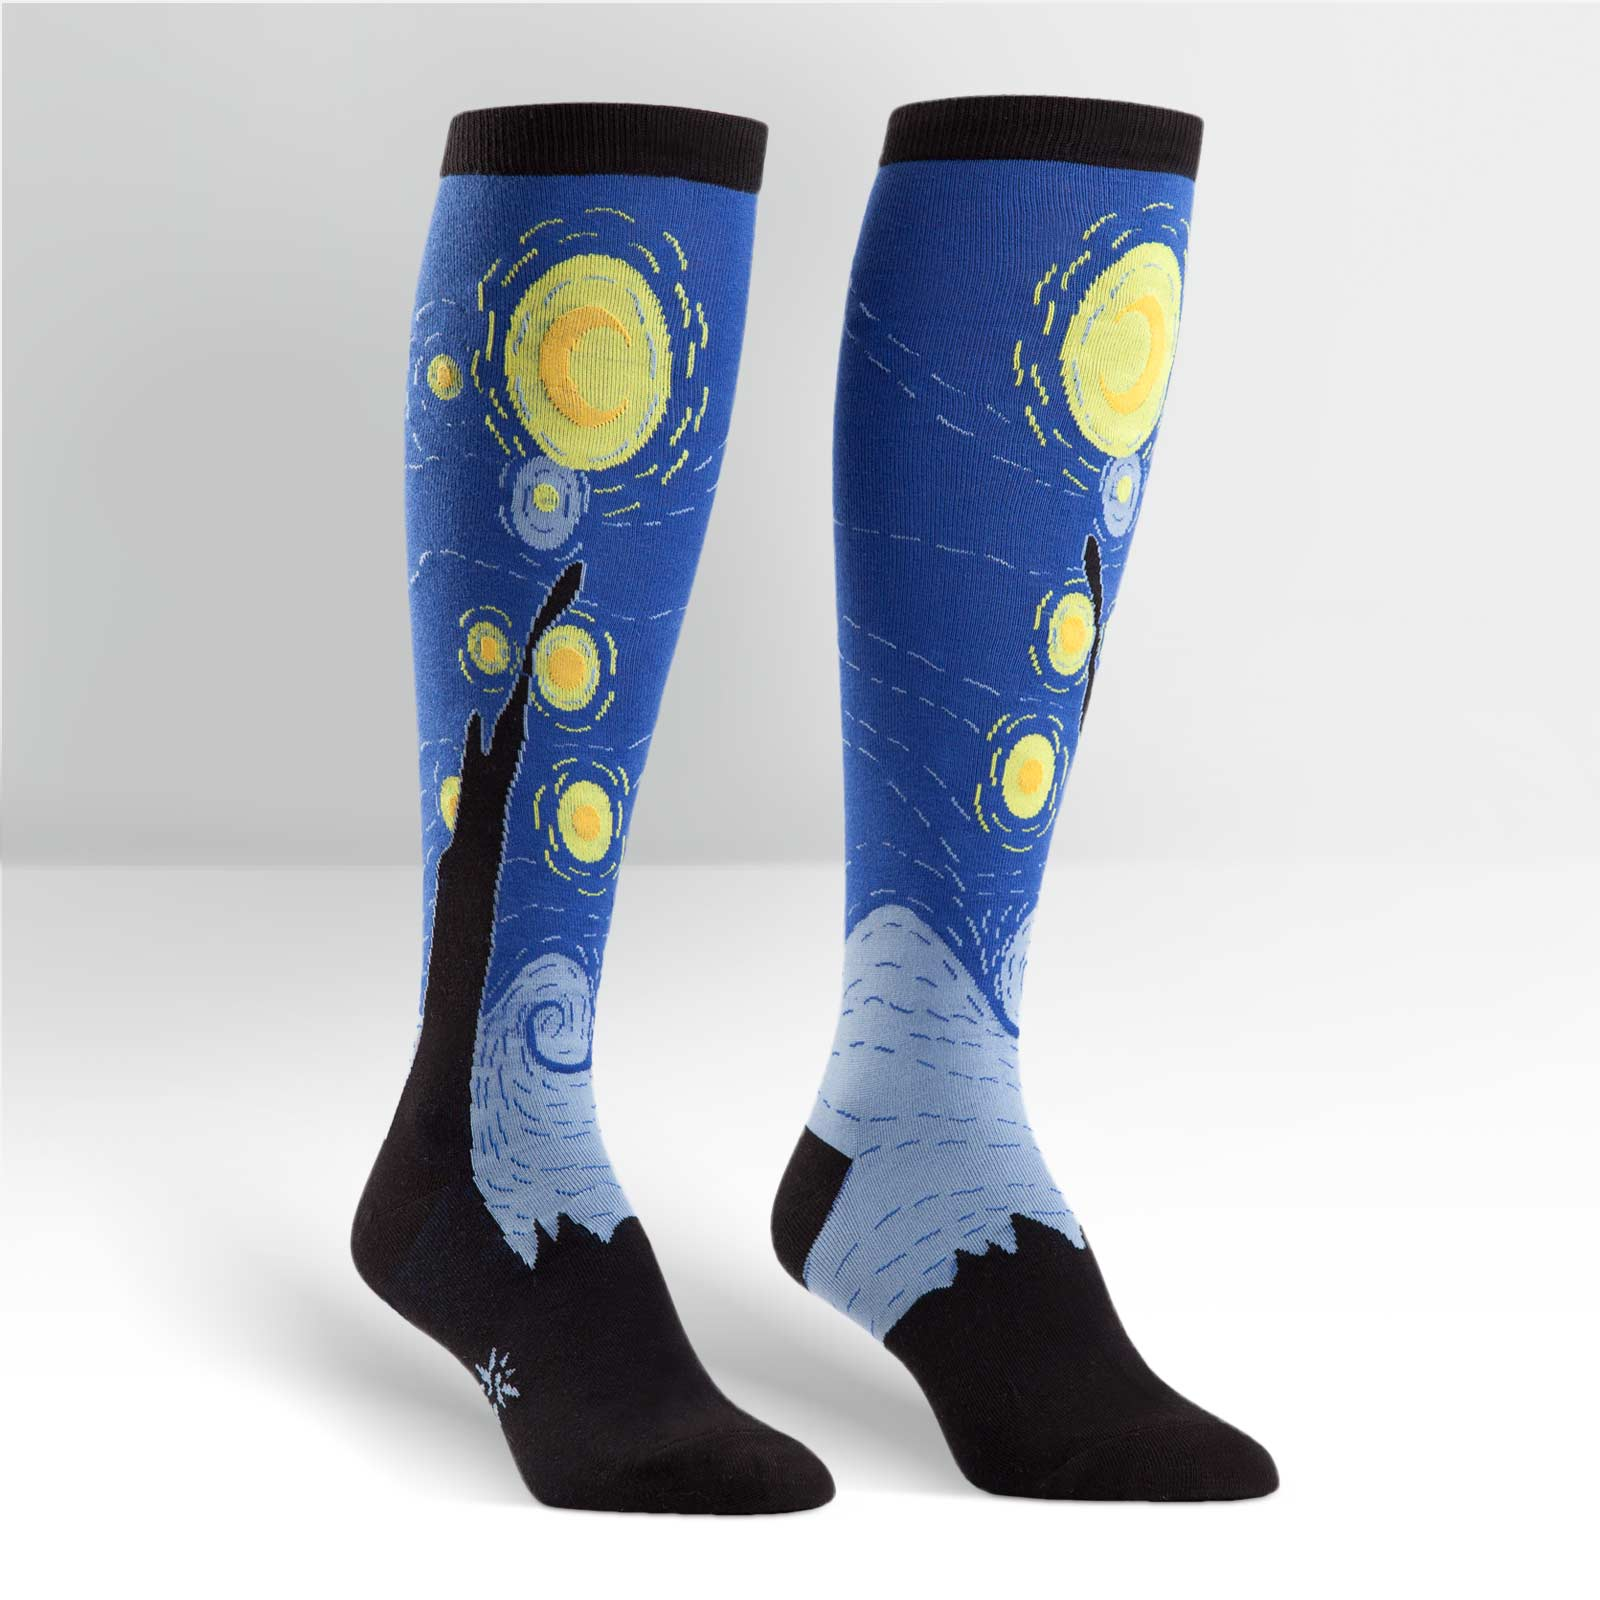 Sock Starry Night,F0121